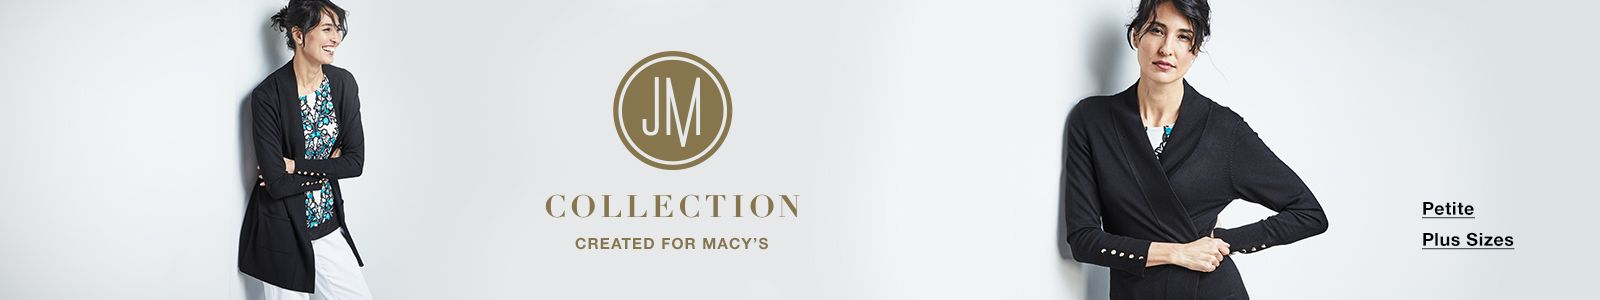 JM Collections, Created for Macy's, Petite, Plus Sizes